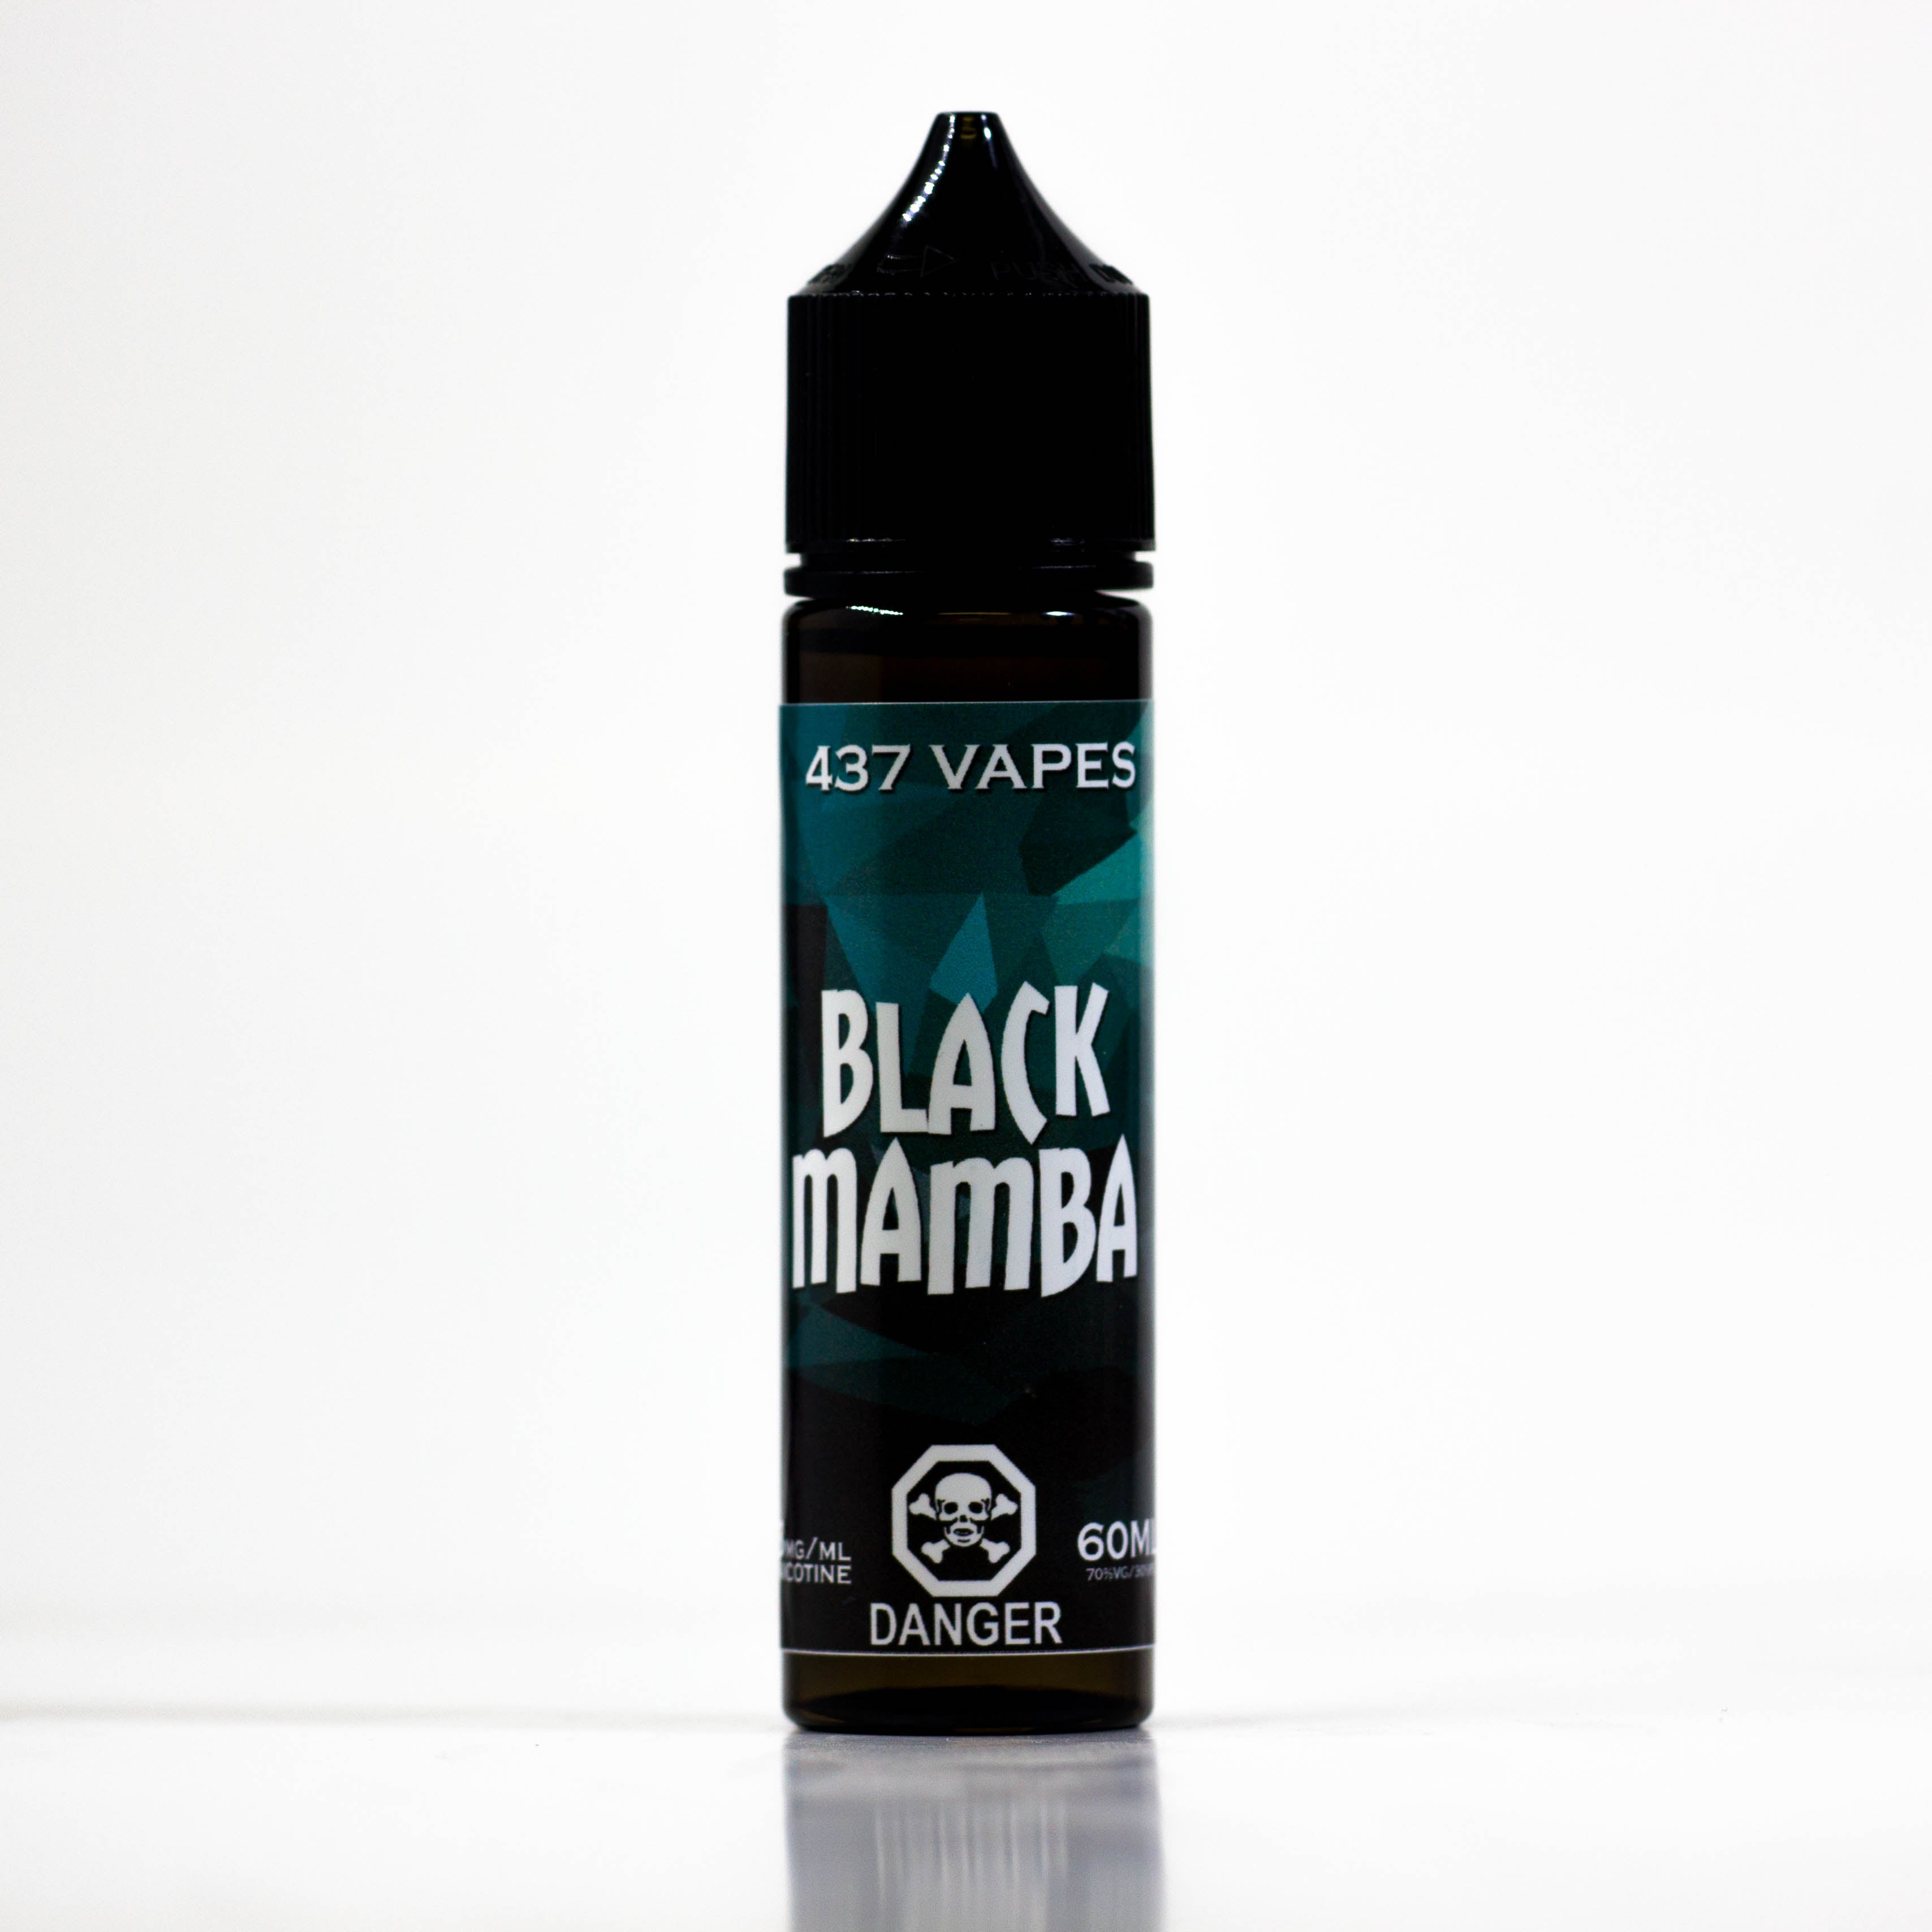 Black Mamba by 437 VAPES